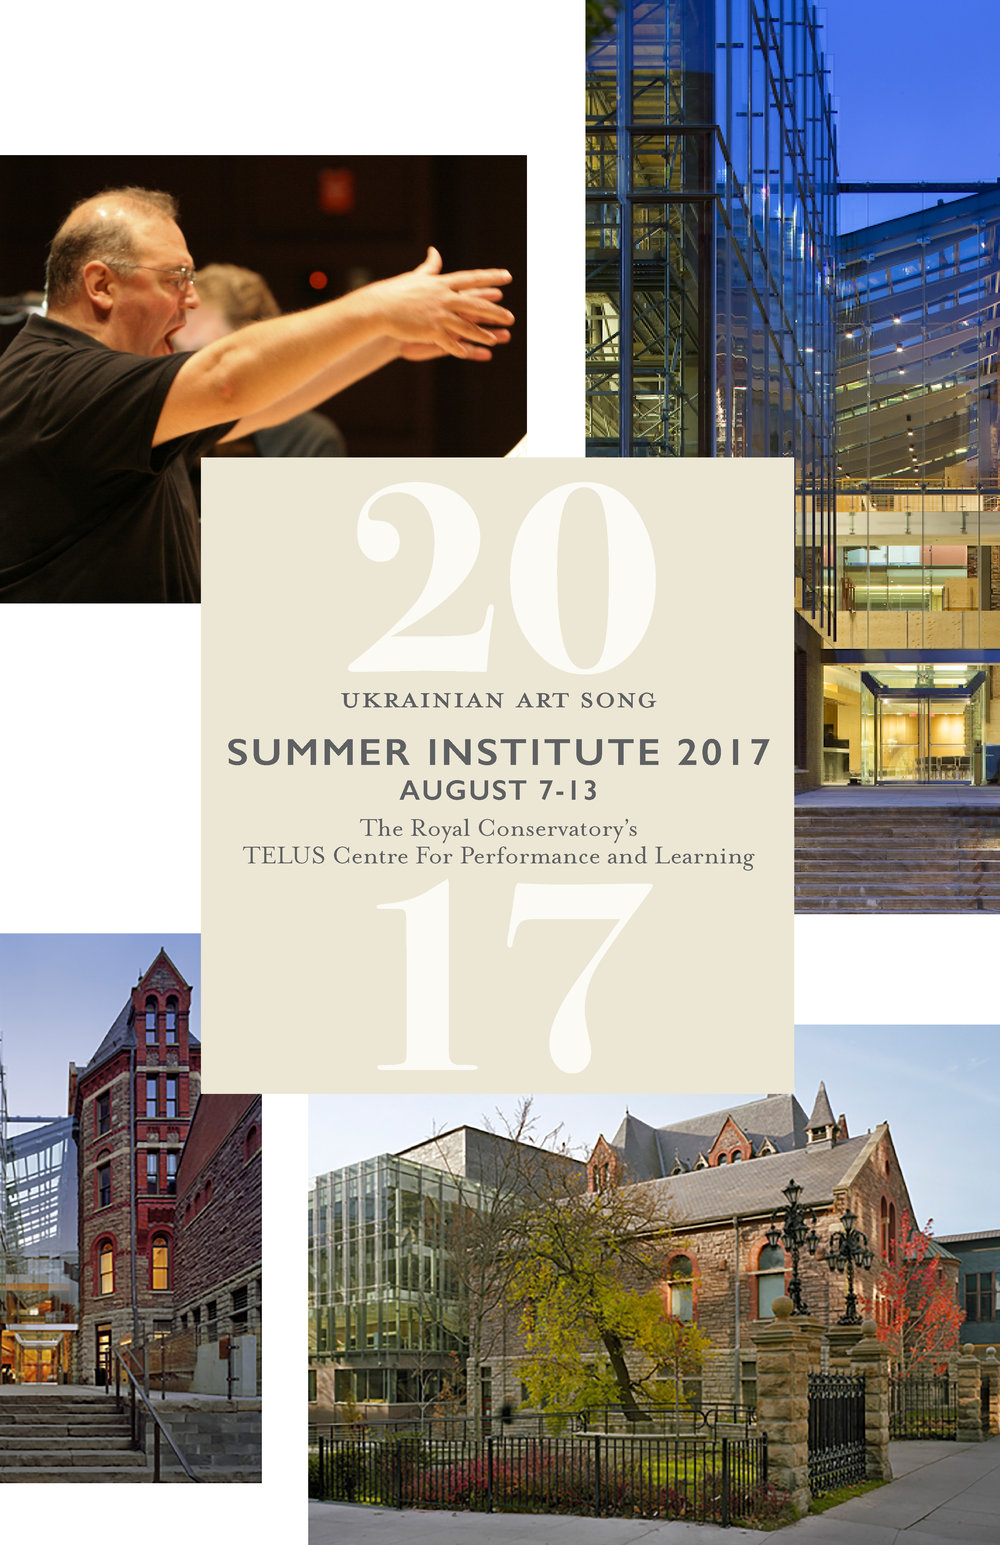 summer institute 2017 card vo9a printer.jpg